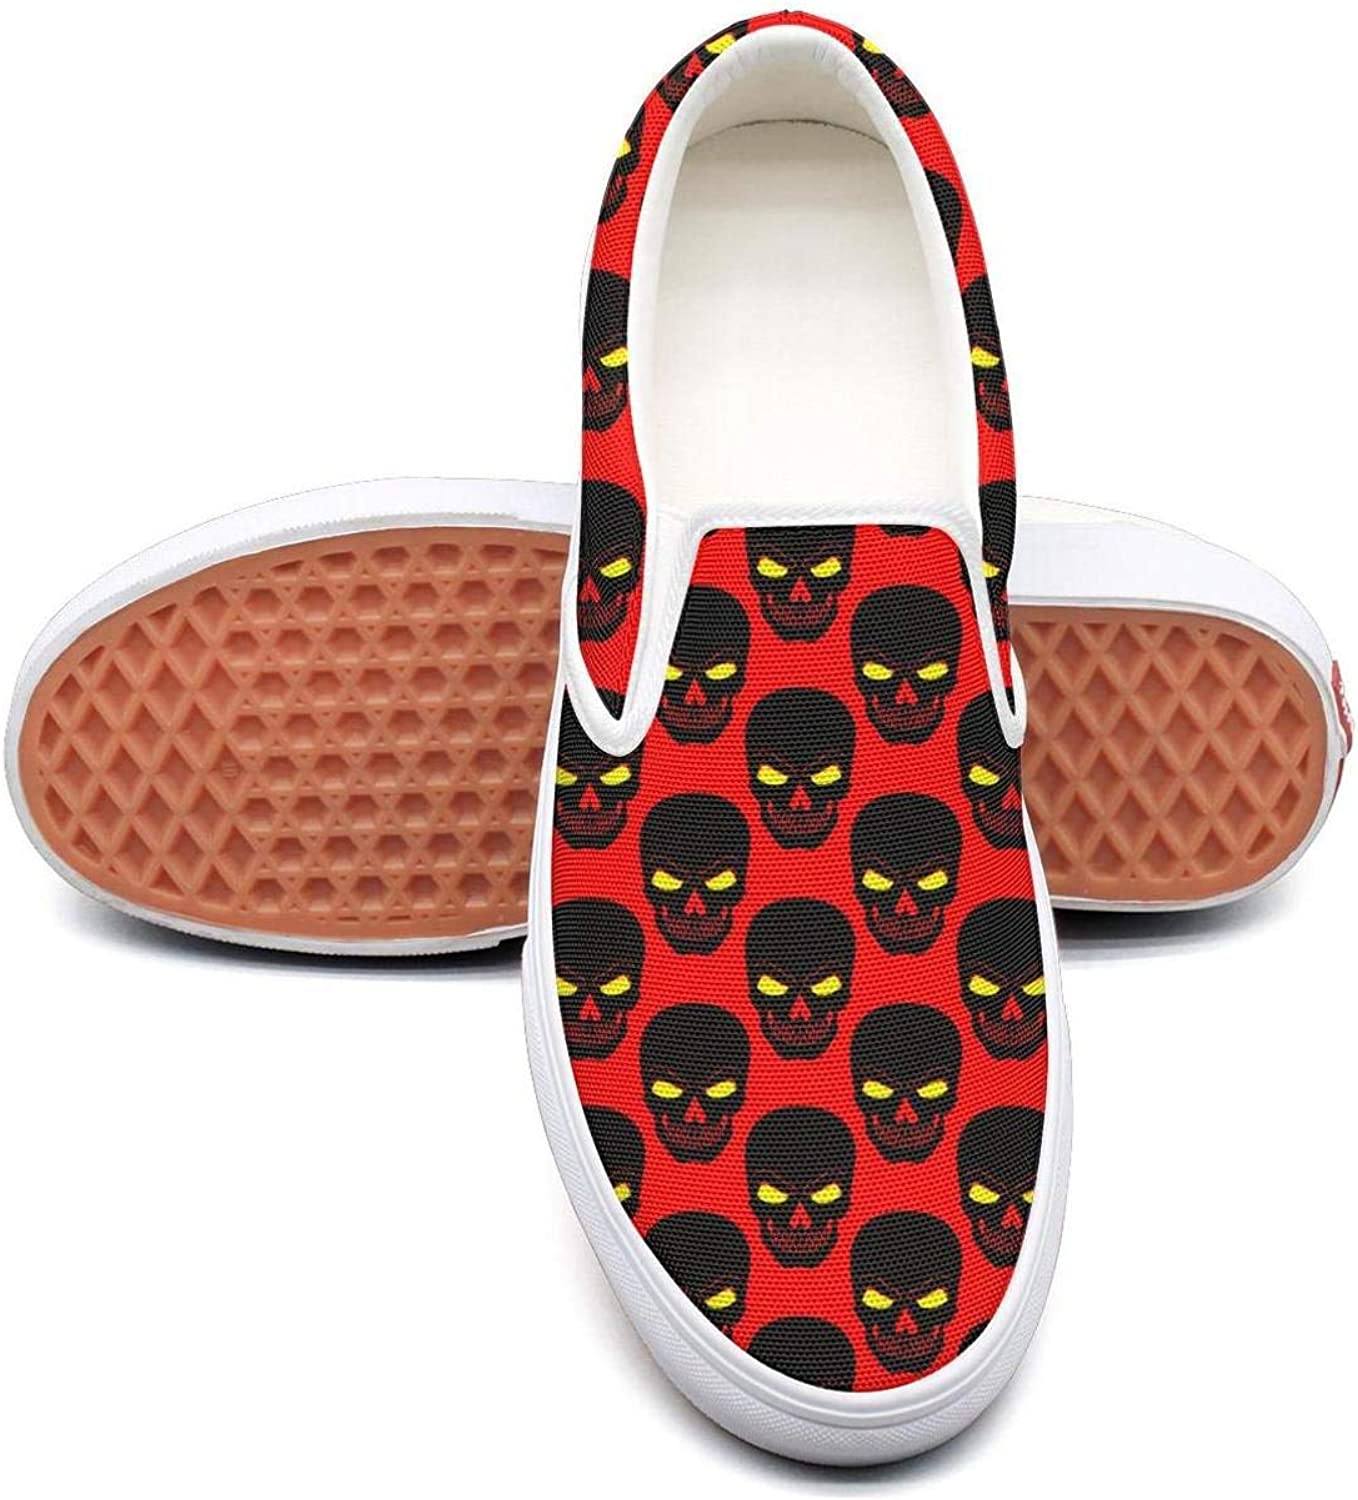 Angrily Skulls Slip On Superior Comfort Loafers Canvas shoes for Women Fashion